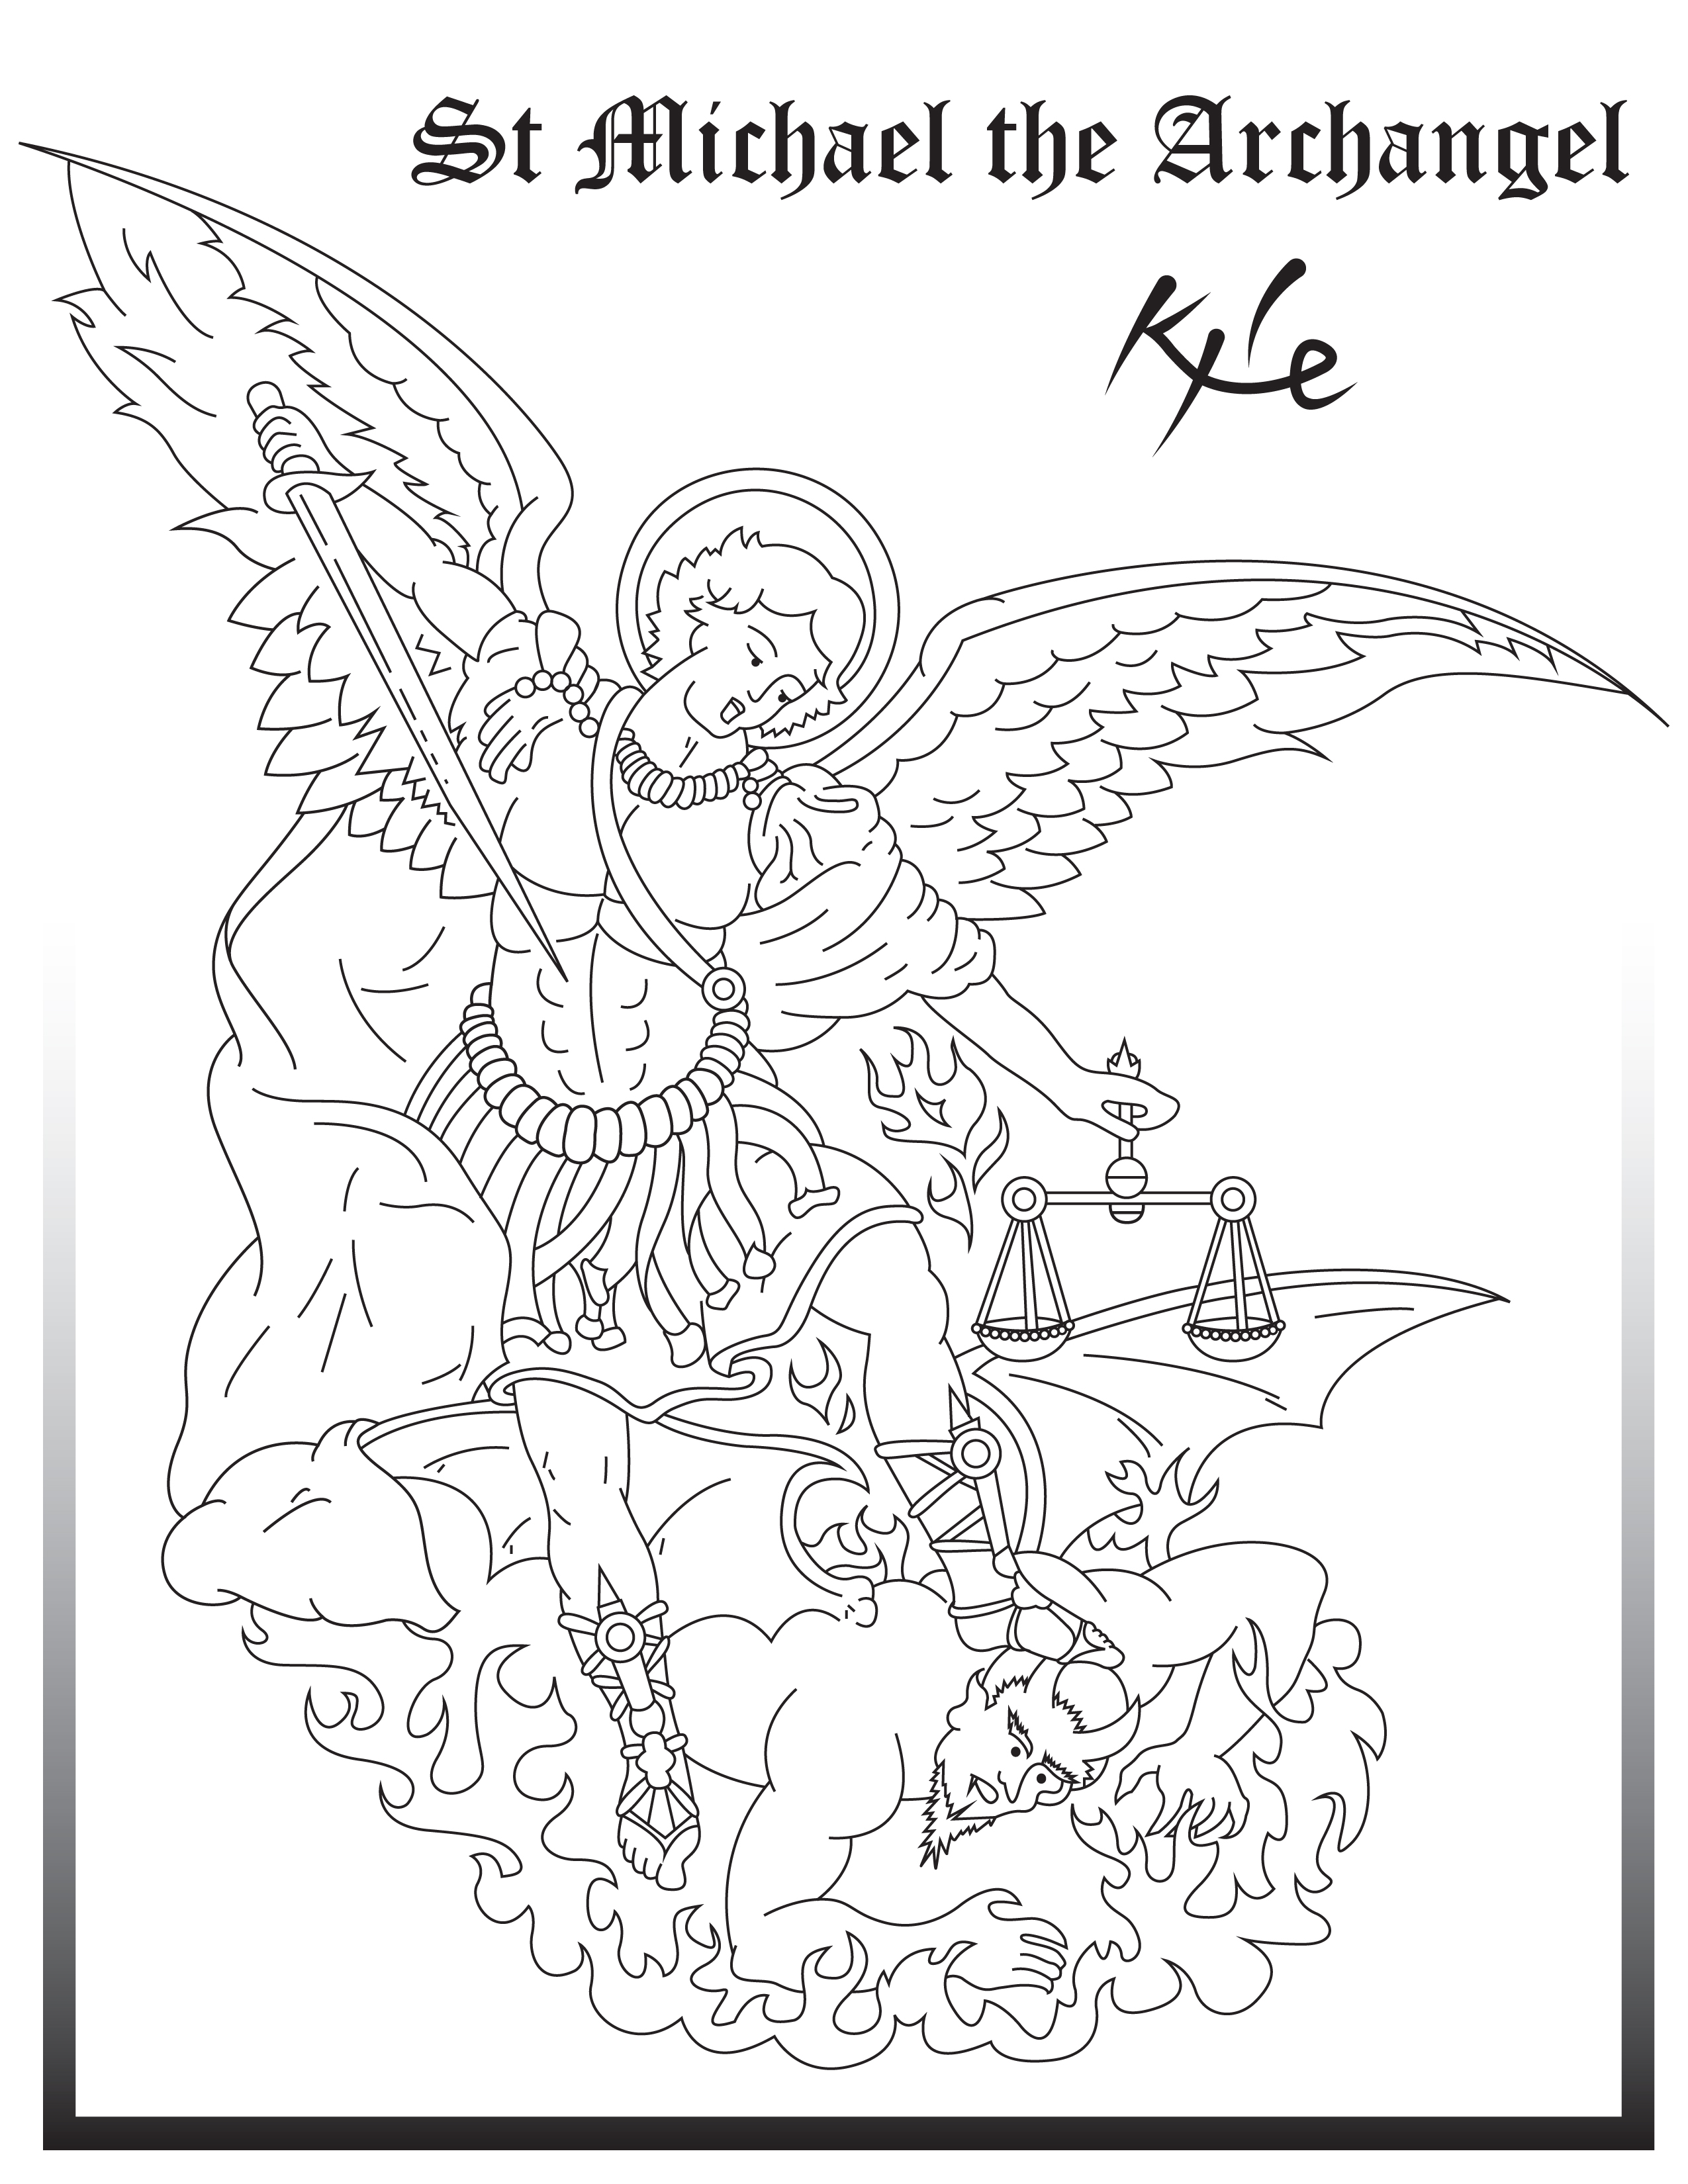 St Michael The Archangel Drawing at GetDrawings.com | Free for ...